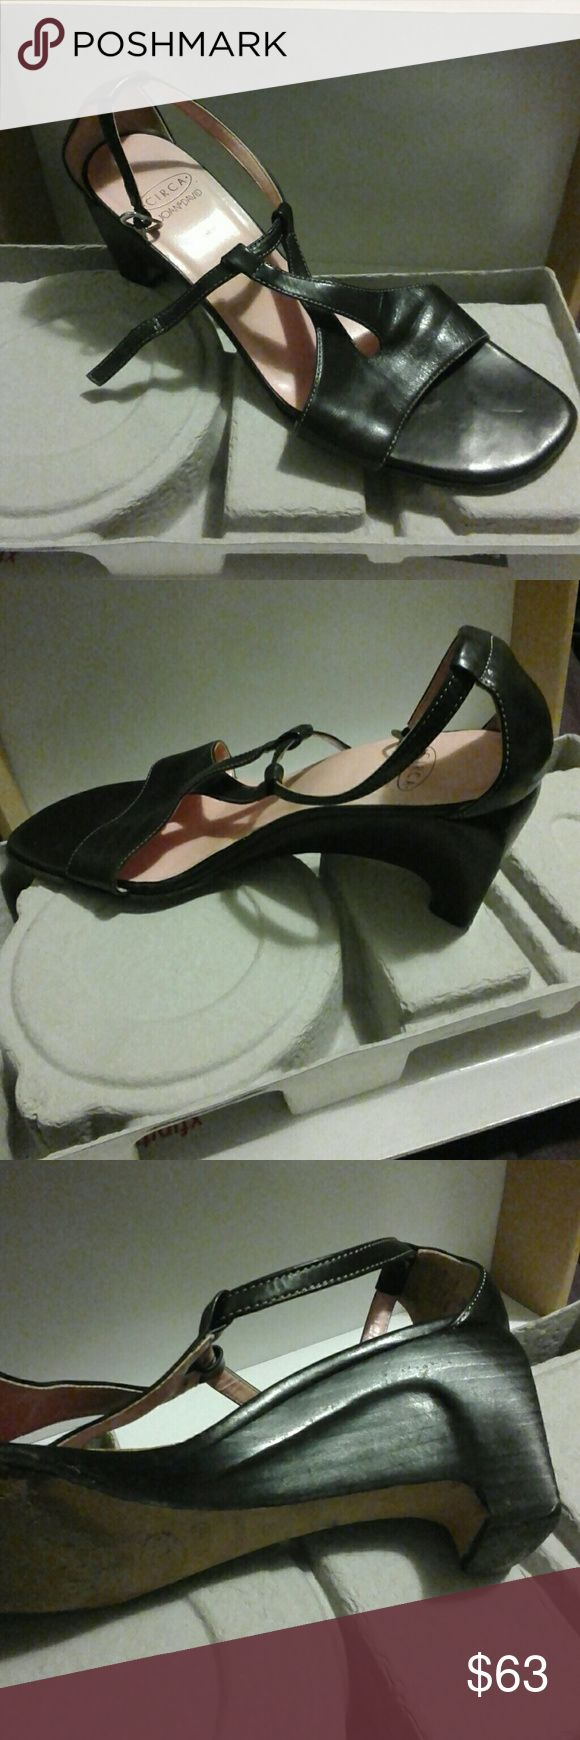 Circa Joan & David open shoes size 8M Very good condition, some wear and tear circa Joan & David Shoes Flats & Loafers